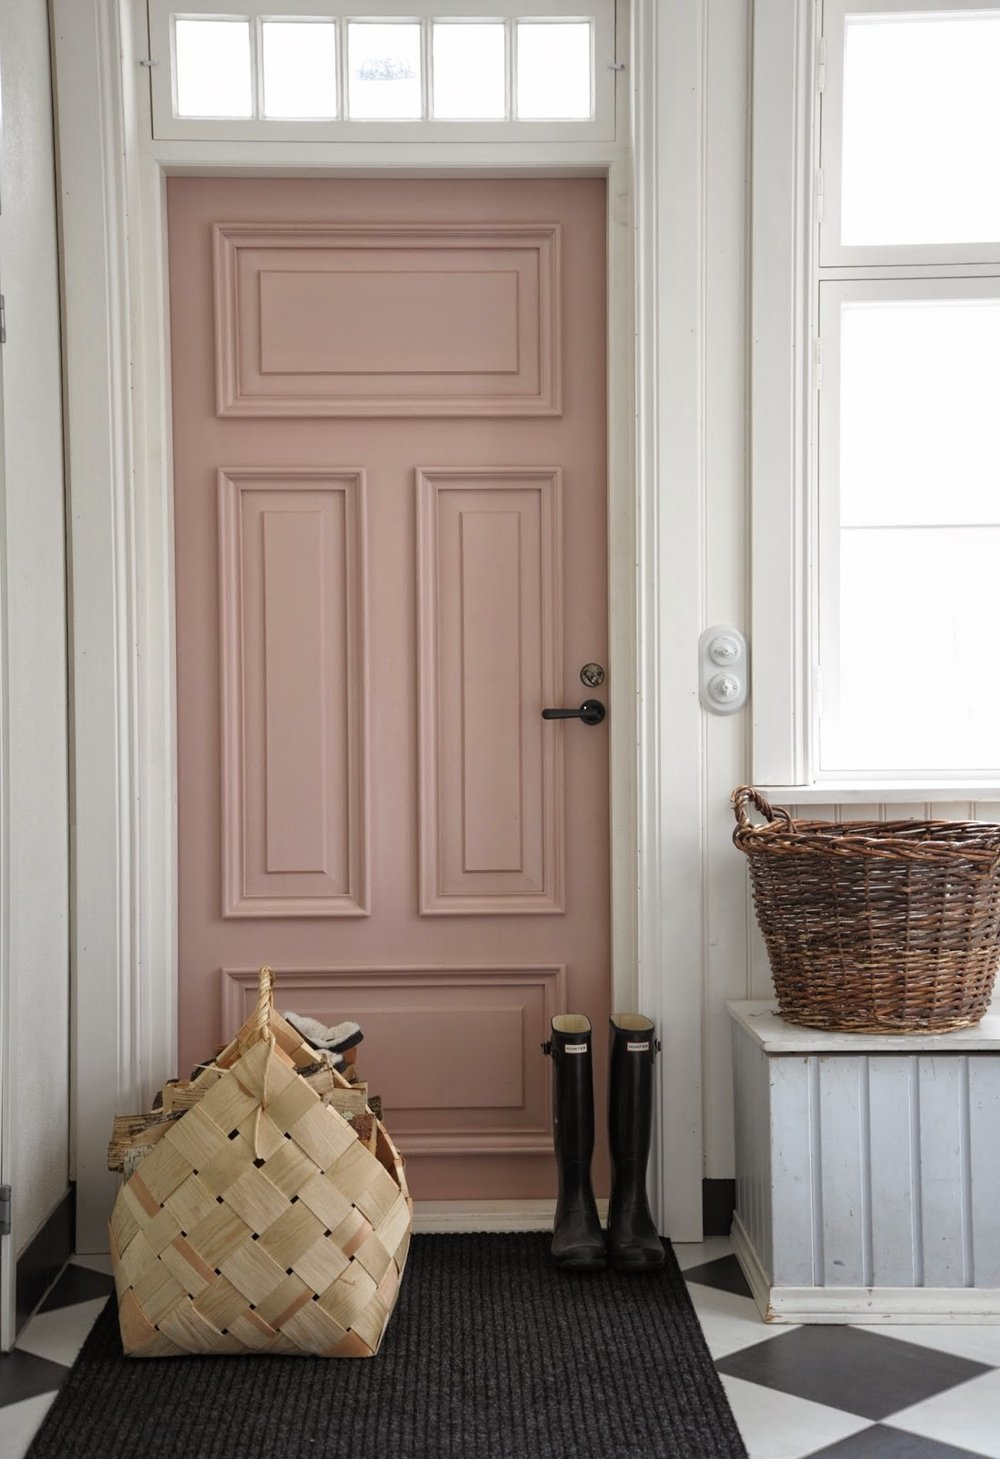 Obsessed With Dusty Pink - Dusty Pink Trend - SYNONYMOUS